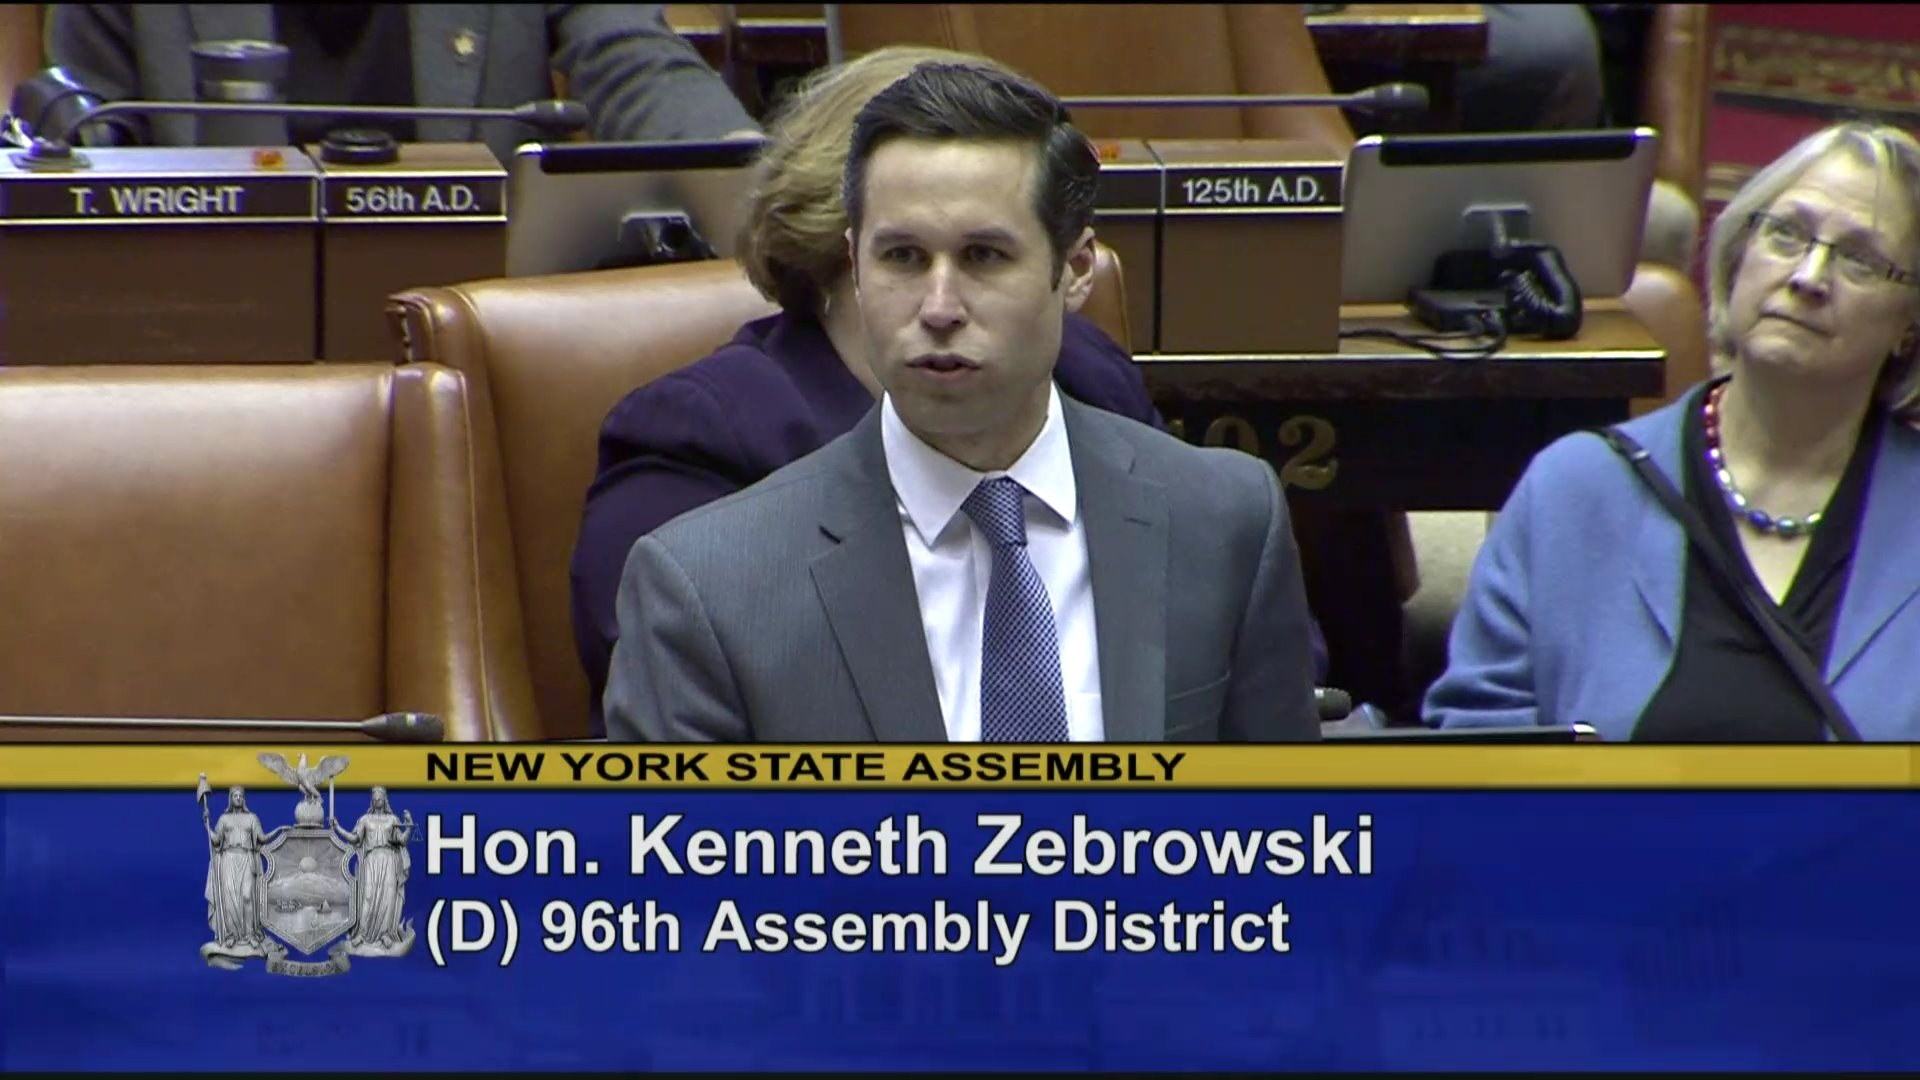 Zebrowski Introduces Rockland Cty Solid Waste Management Authority Members